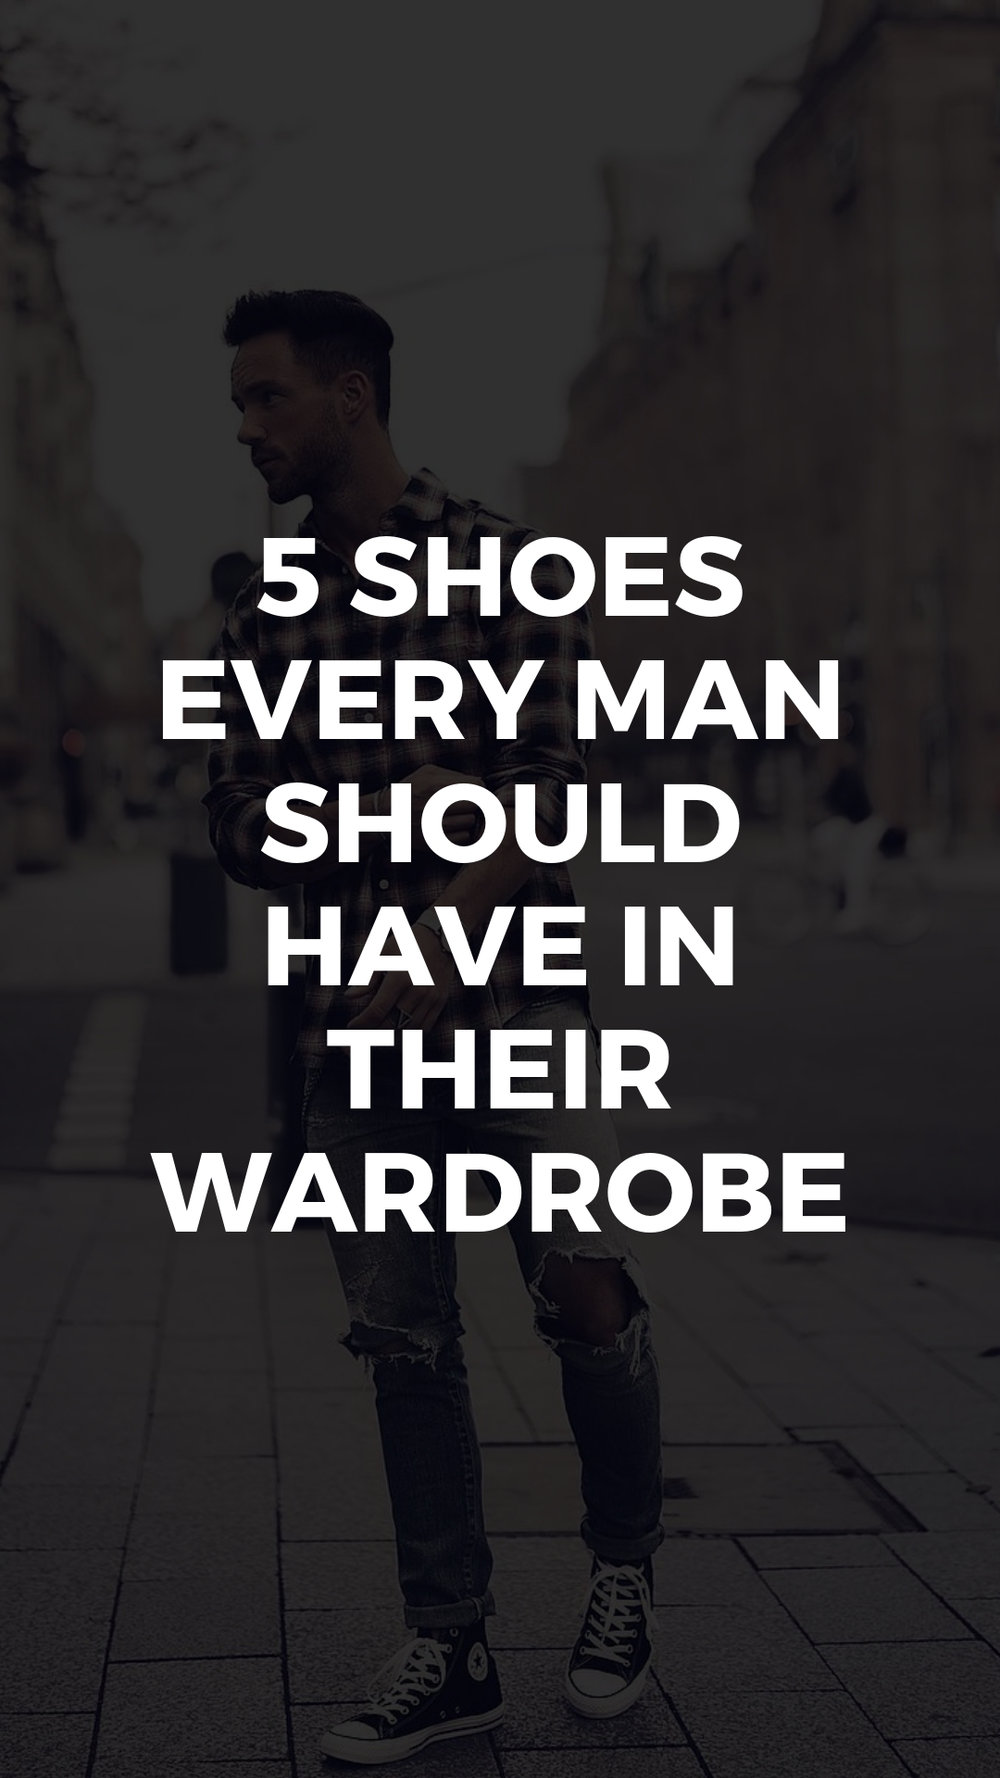 5 Shoes Every Man Should Have in Their Wardrobe.jpg